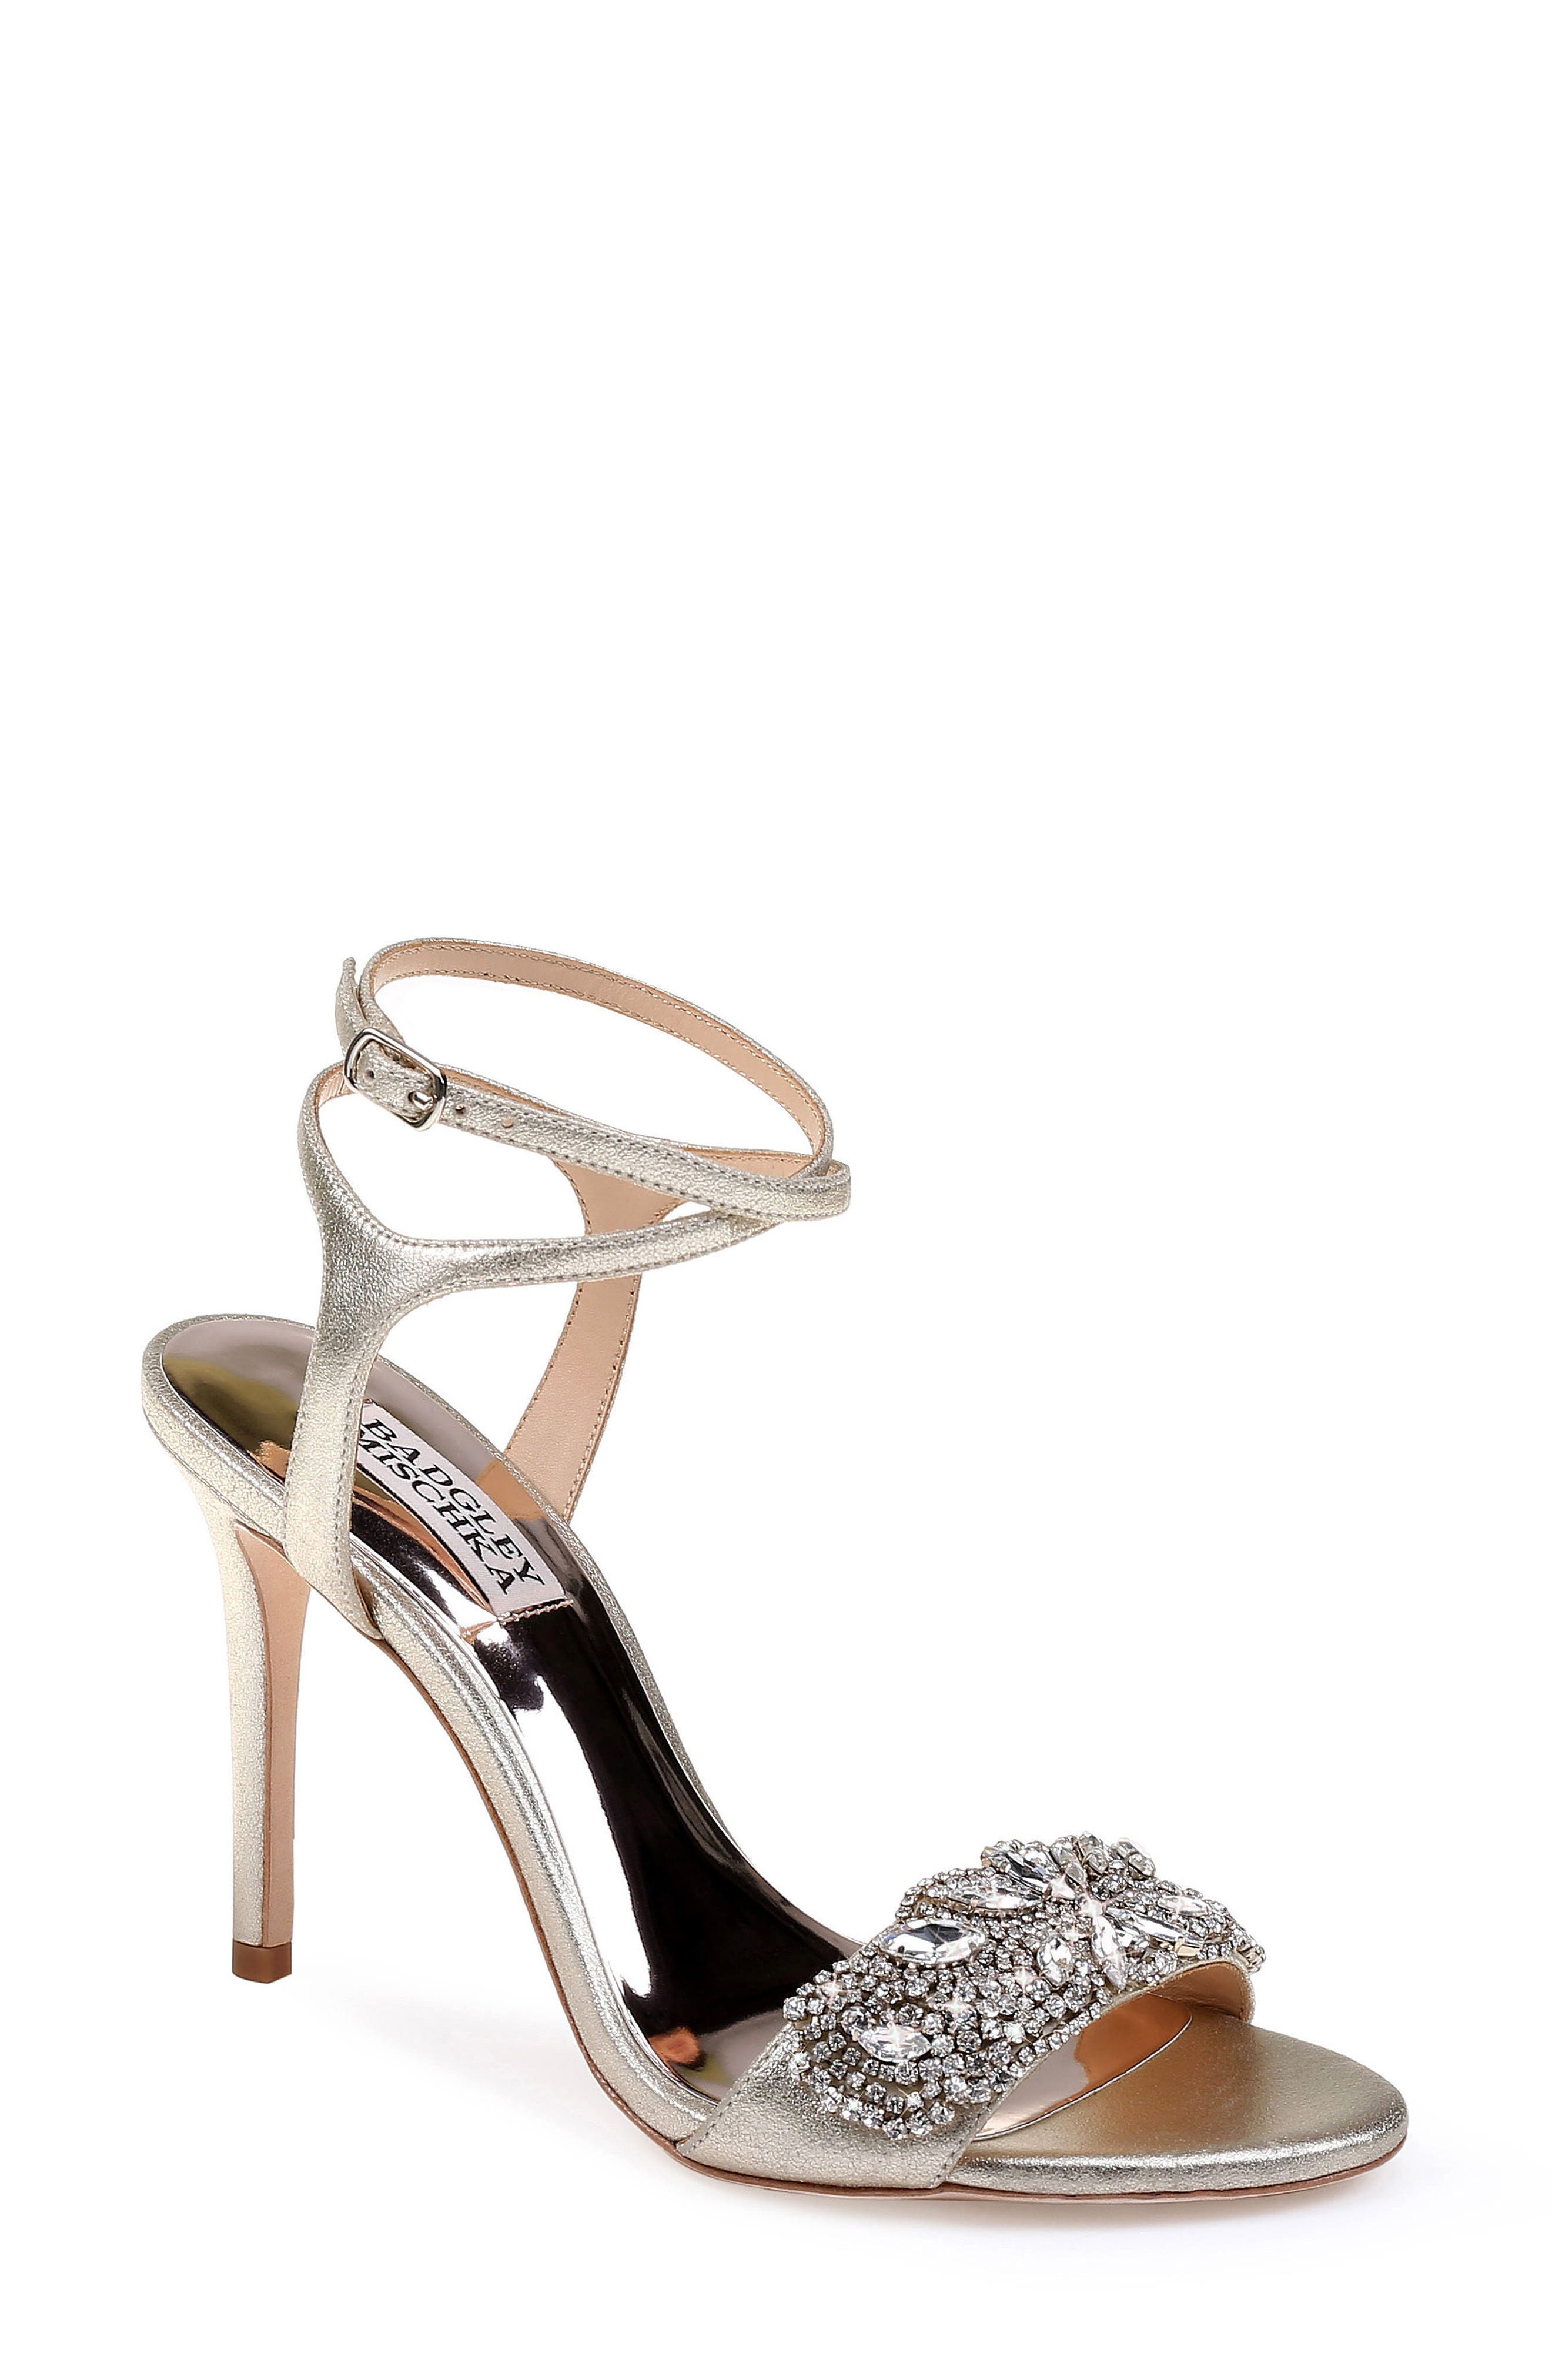 Hailey Embellished Ankle Strap Sandal,                             Main thumbnail 1, color,                             040